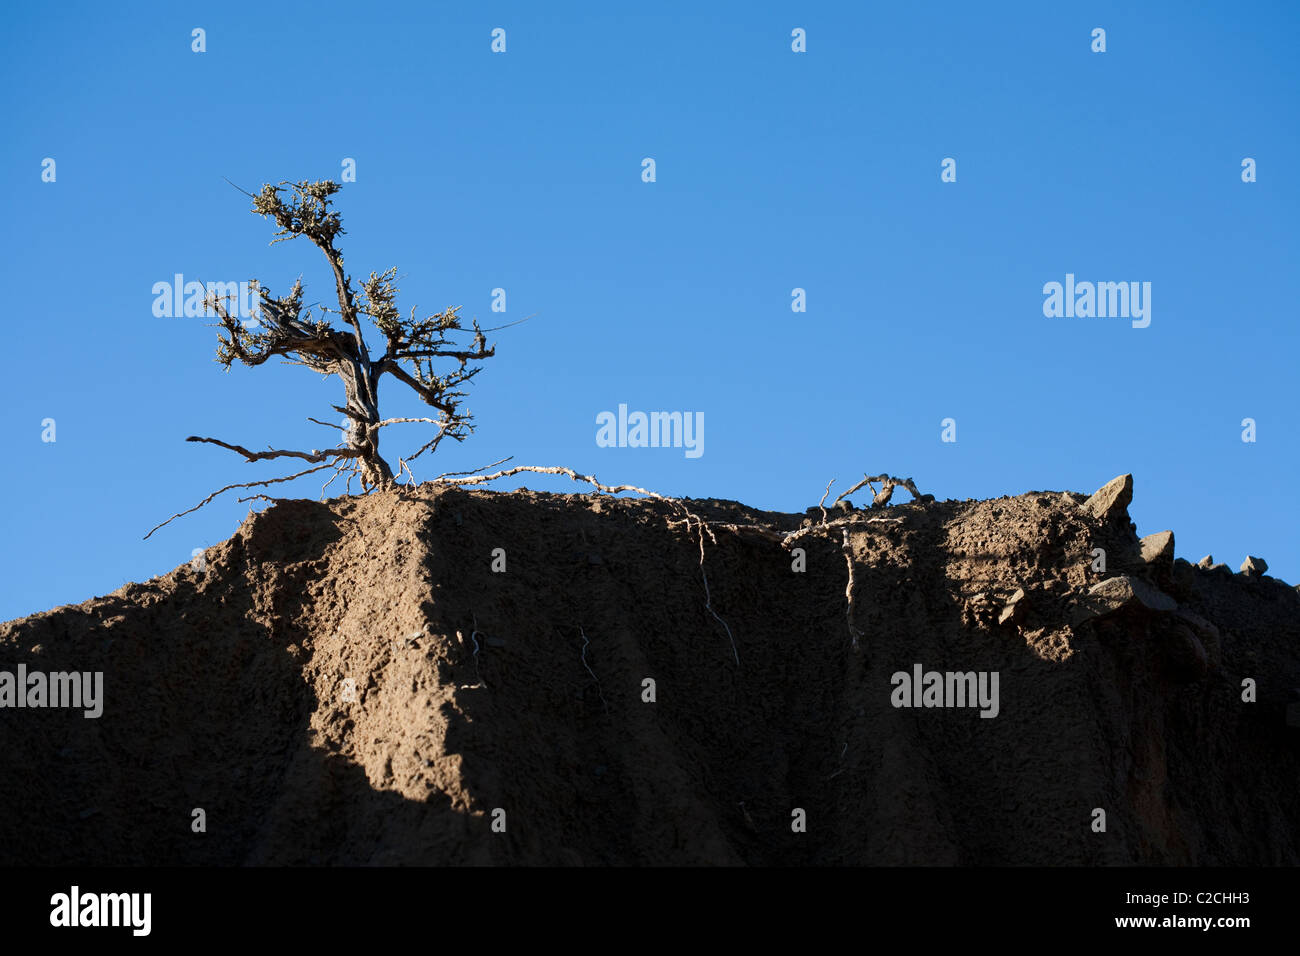 A small plant with exposed roots on the edge of an erosion gully. - Stock Image